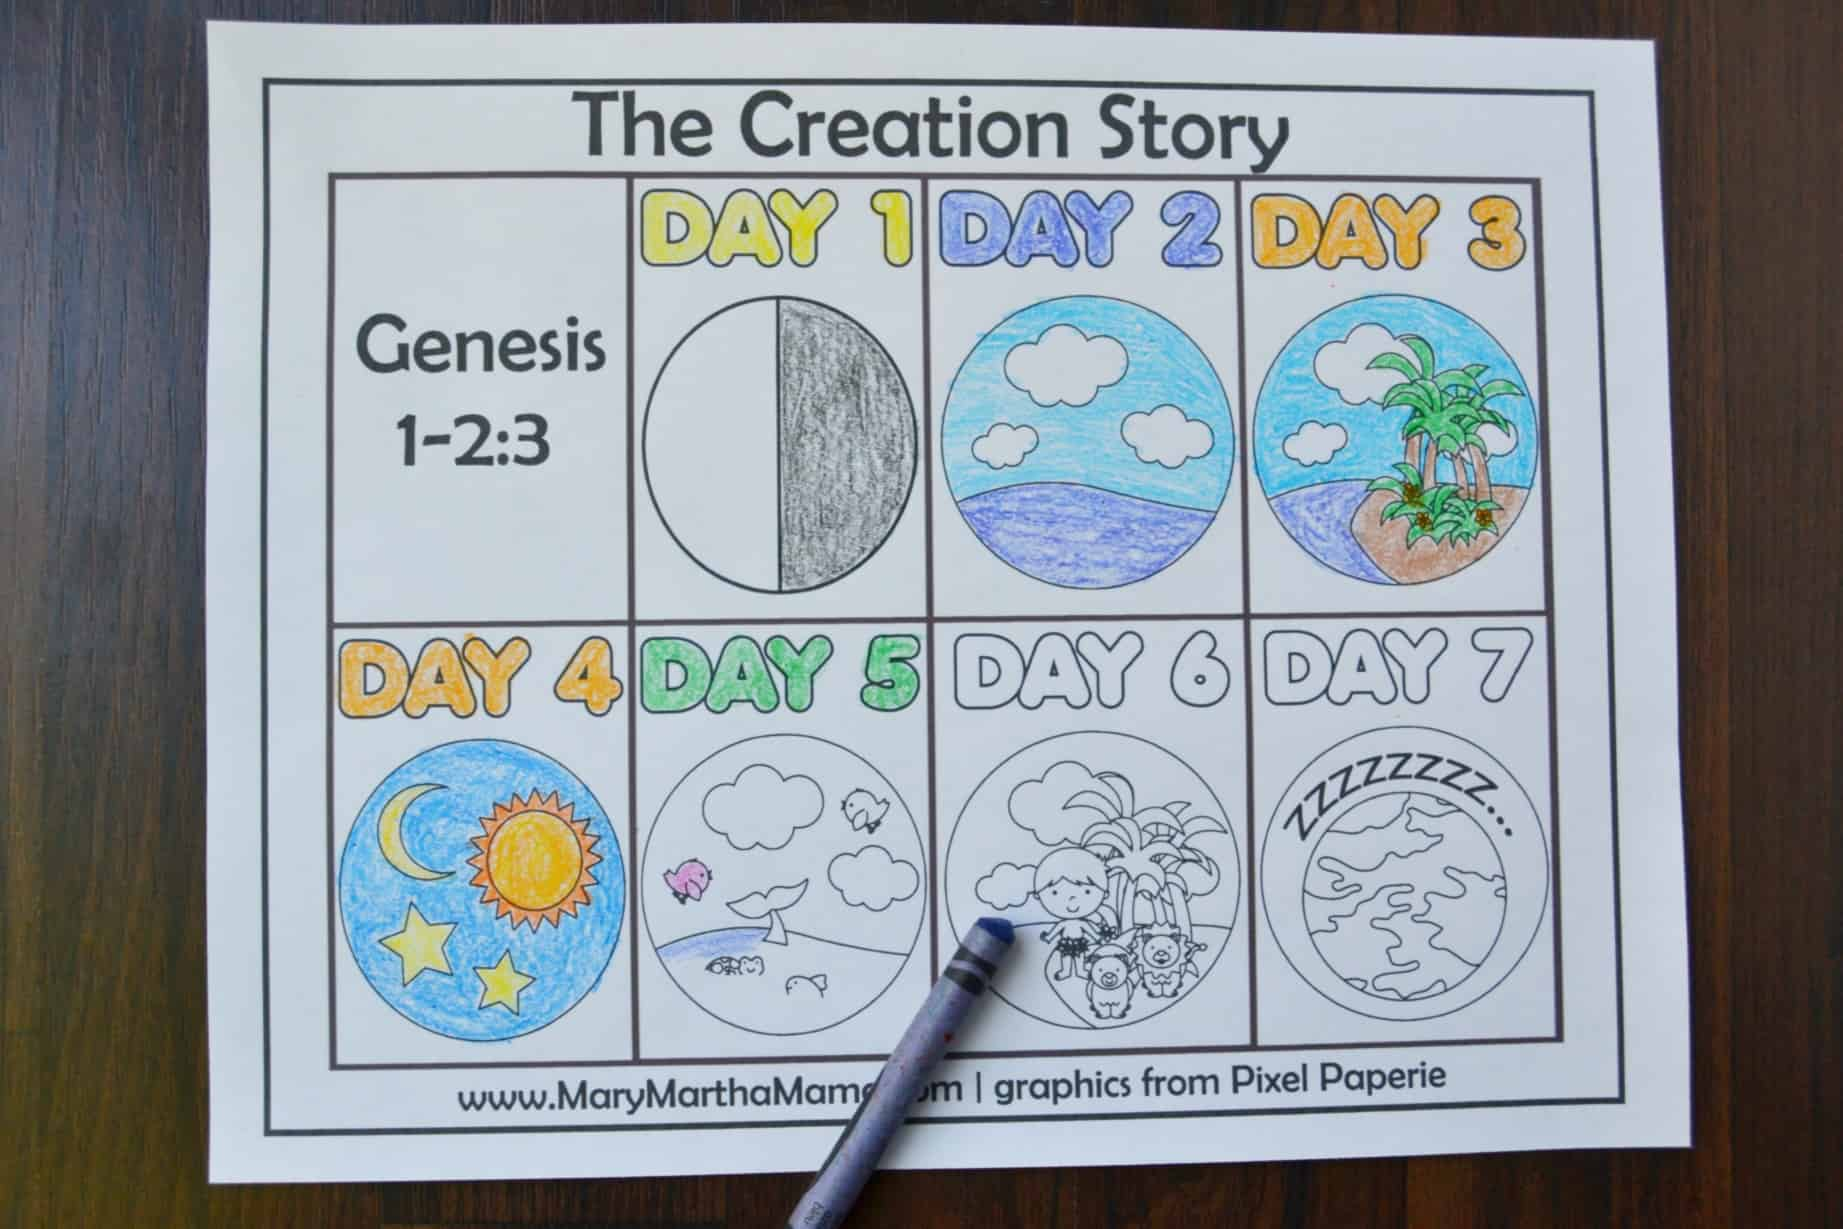 These fun creation coloring pages help preschool and early elementary children to learn the creation story